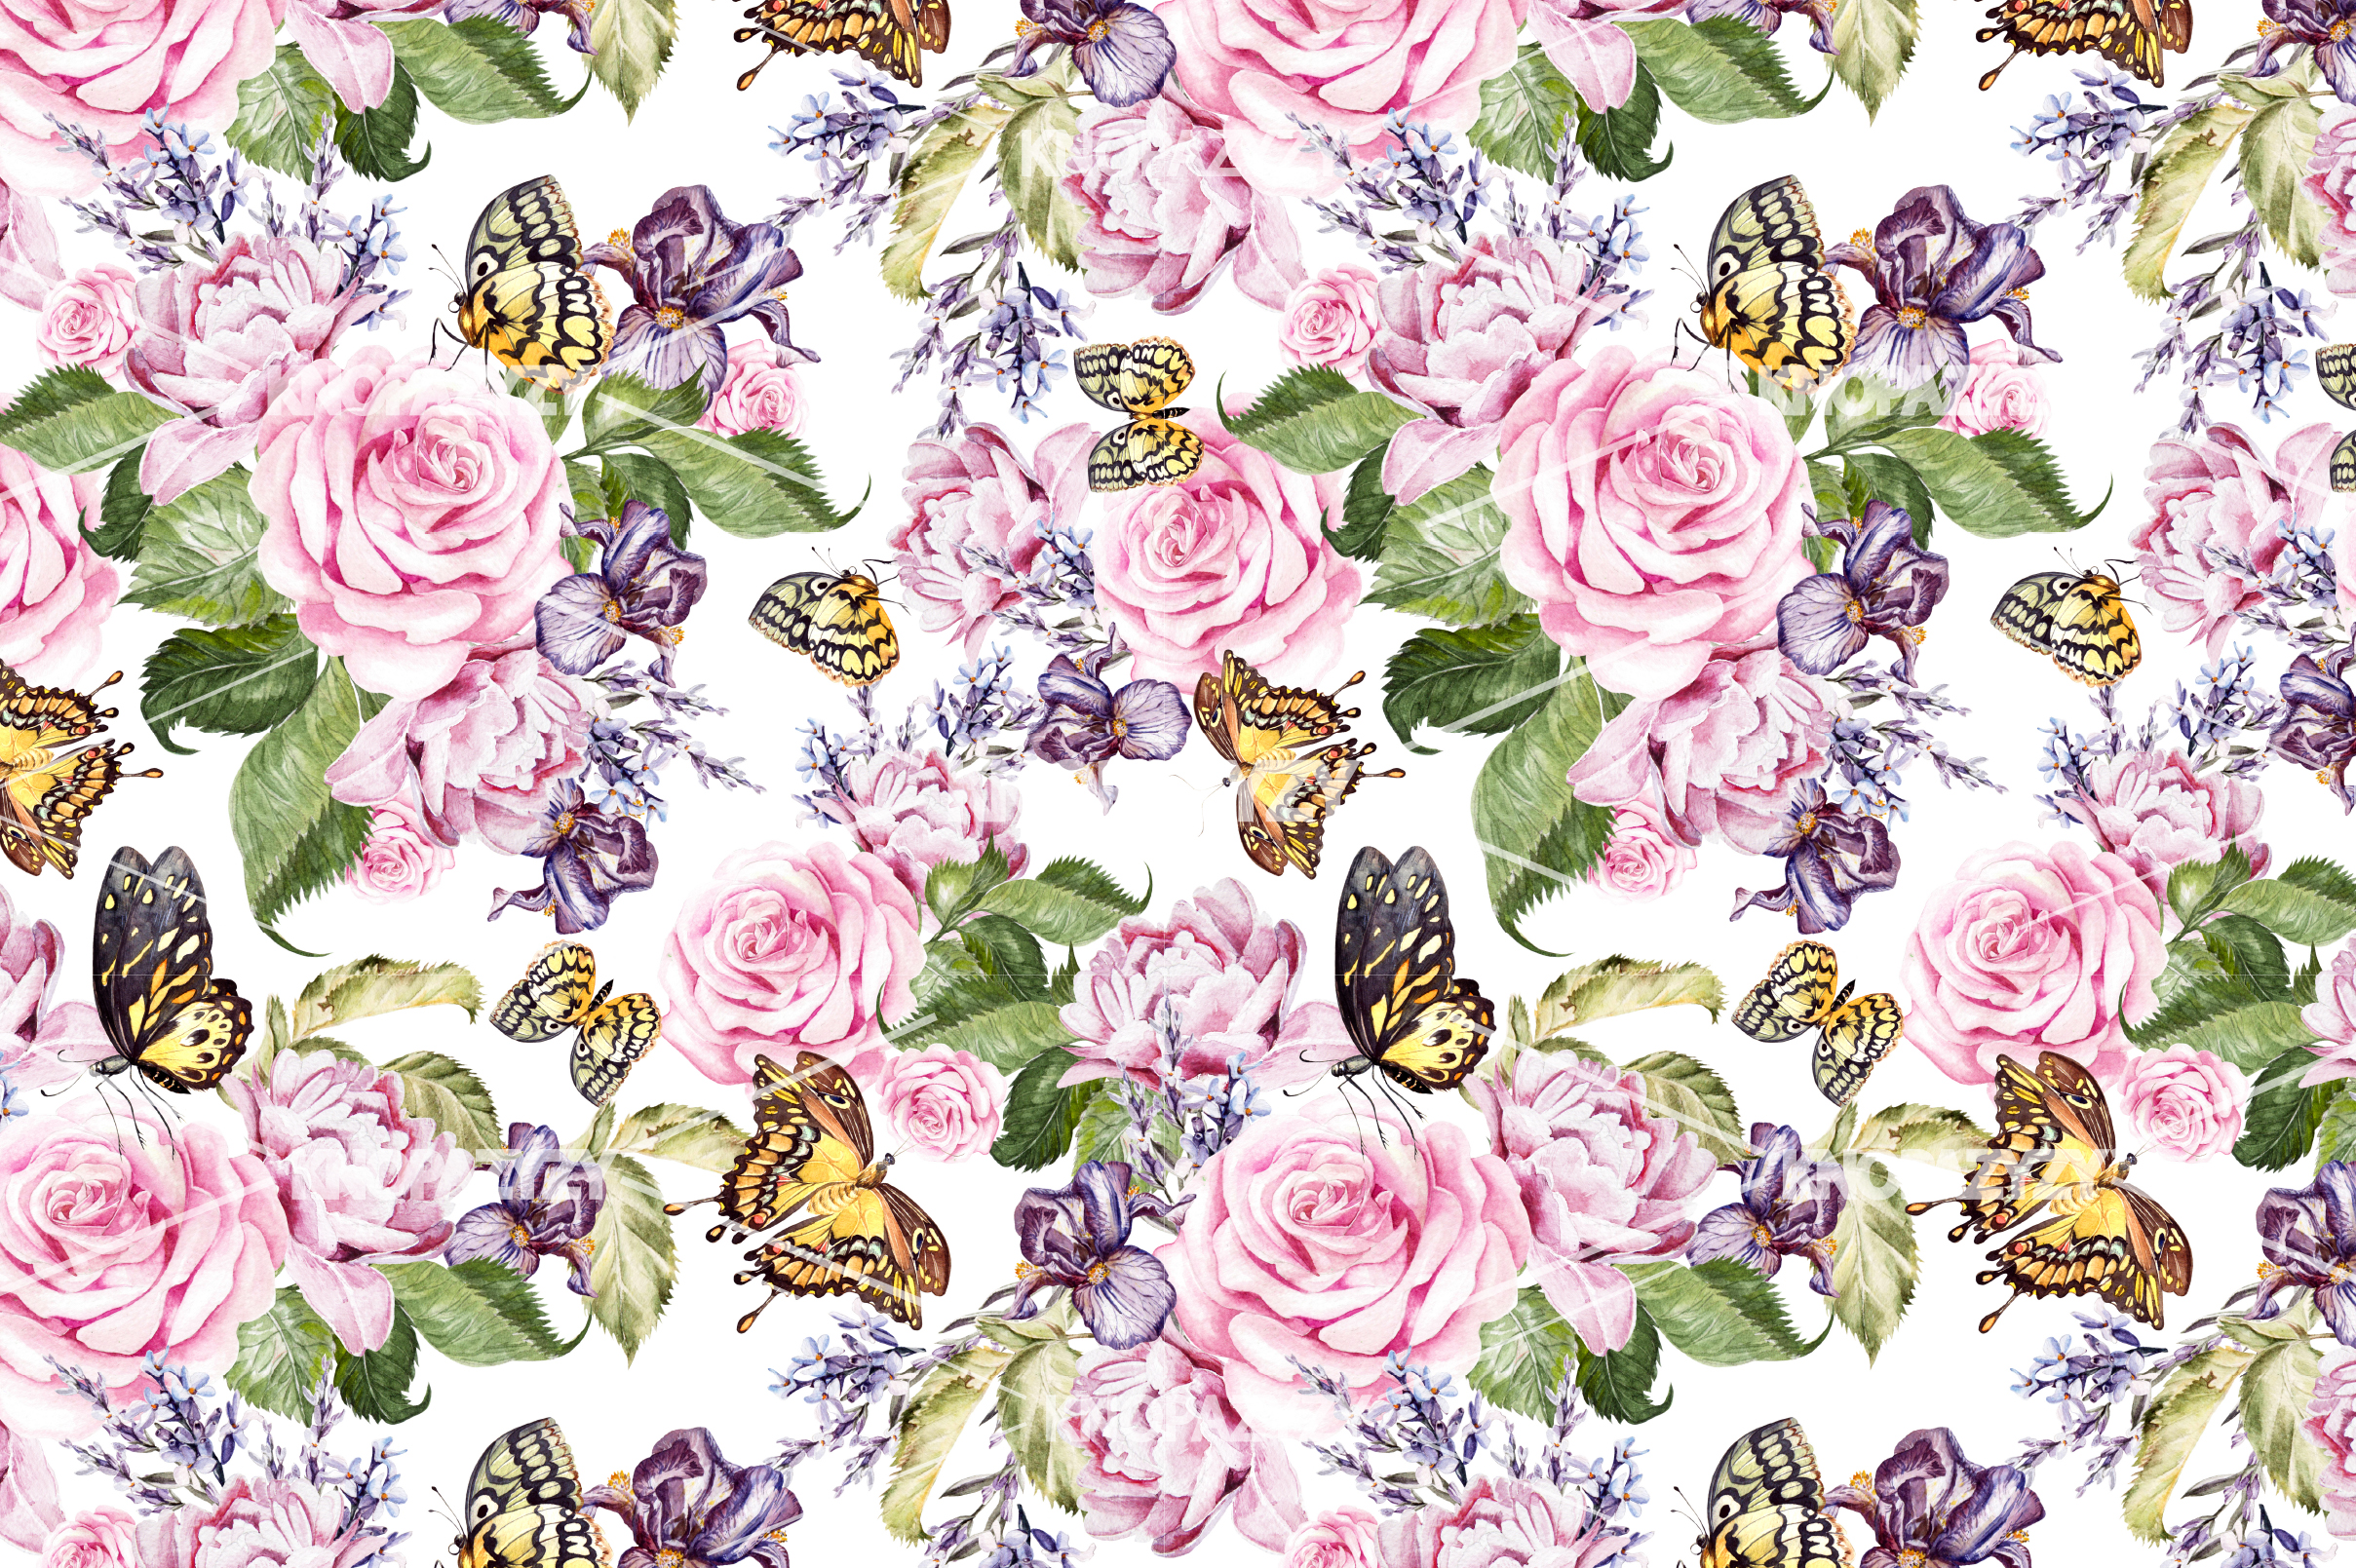 14 Hand drawn watercolor patterns example image 7